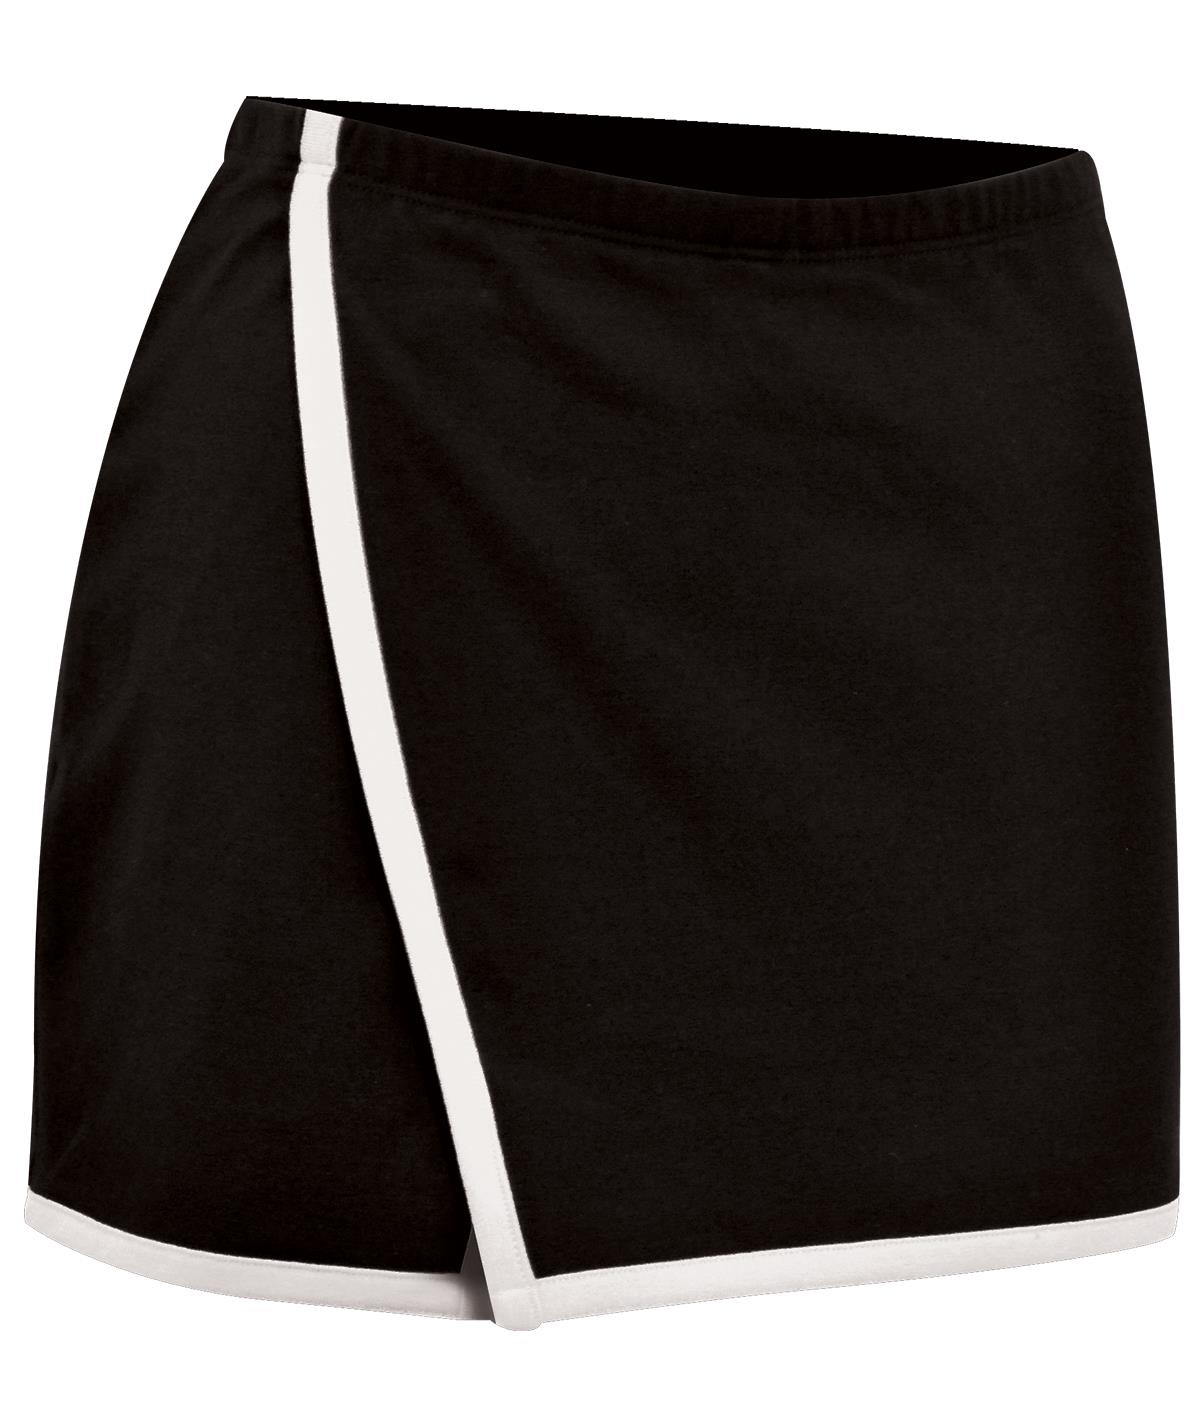 Lycra V Skirt With Built In Shorts